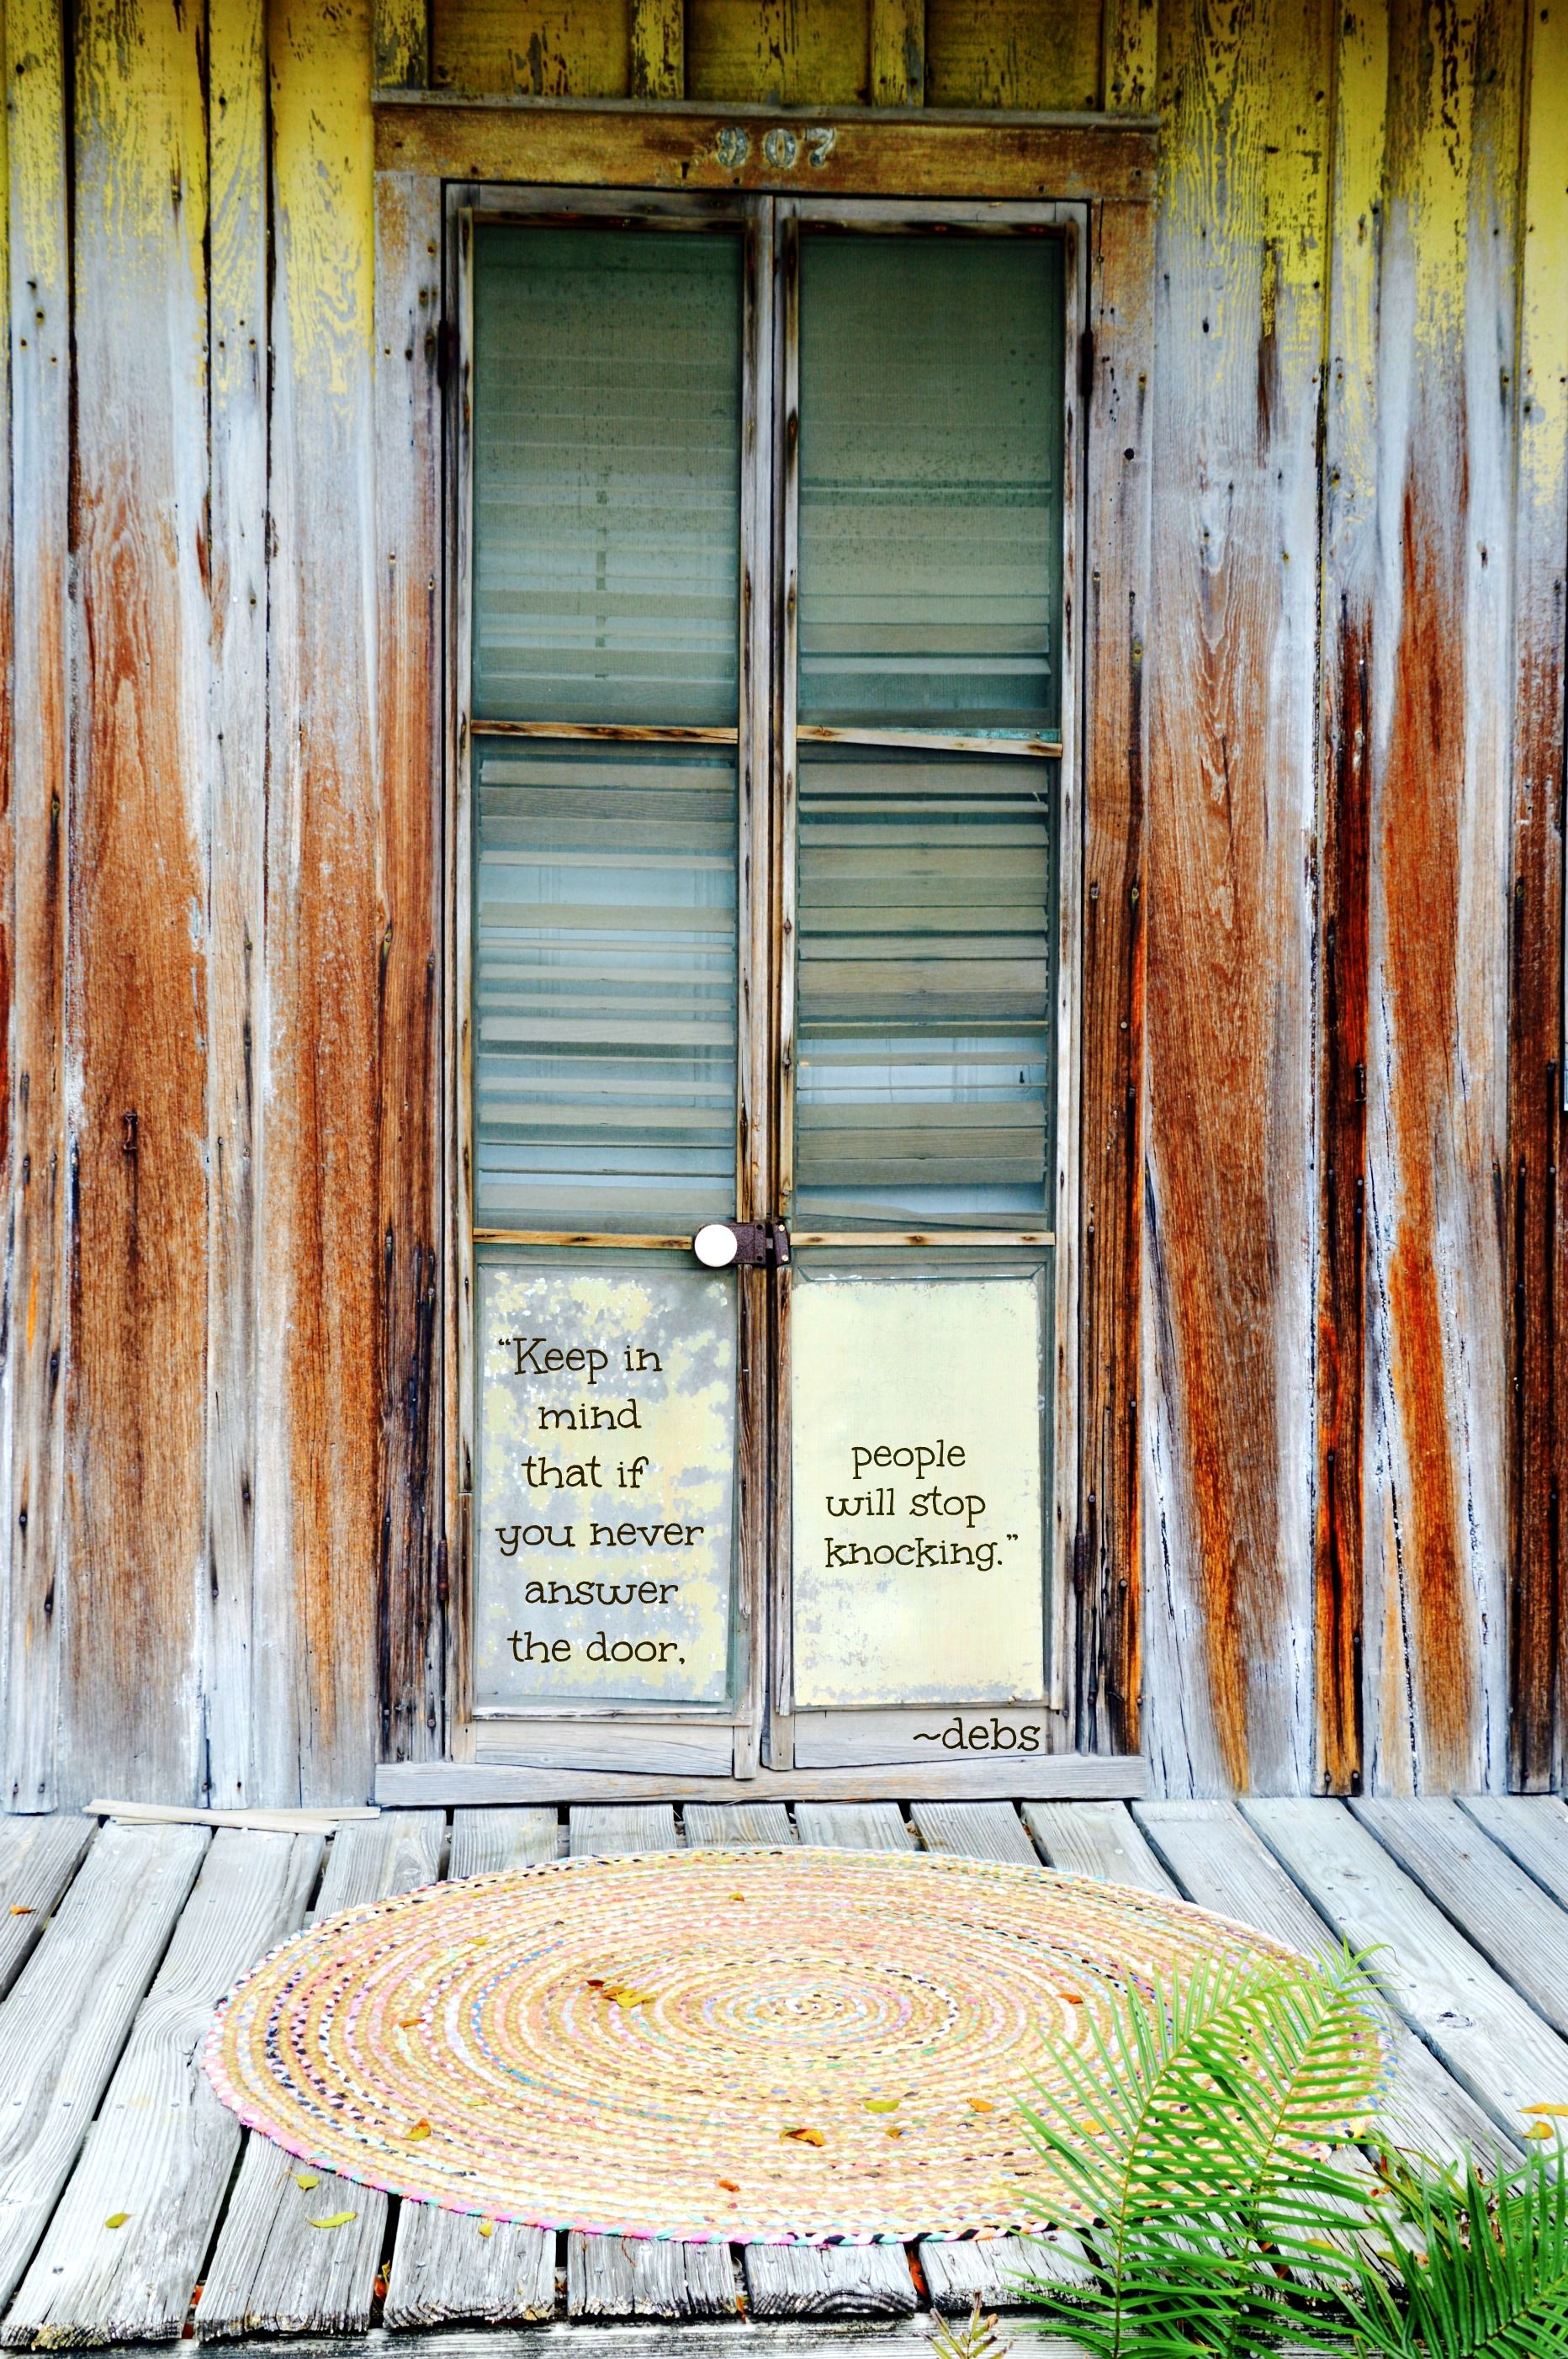 \u201cKeep in mind that if you never answer the door people will stop knocking & Keep in mind that if you never answer the door people will stop ...